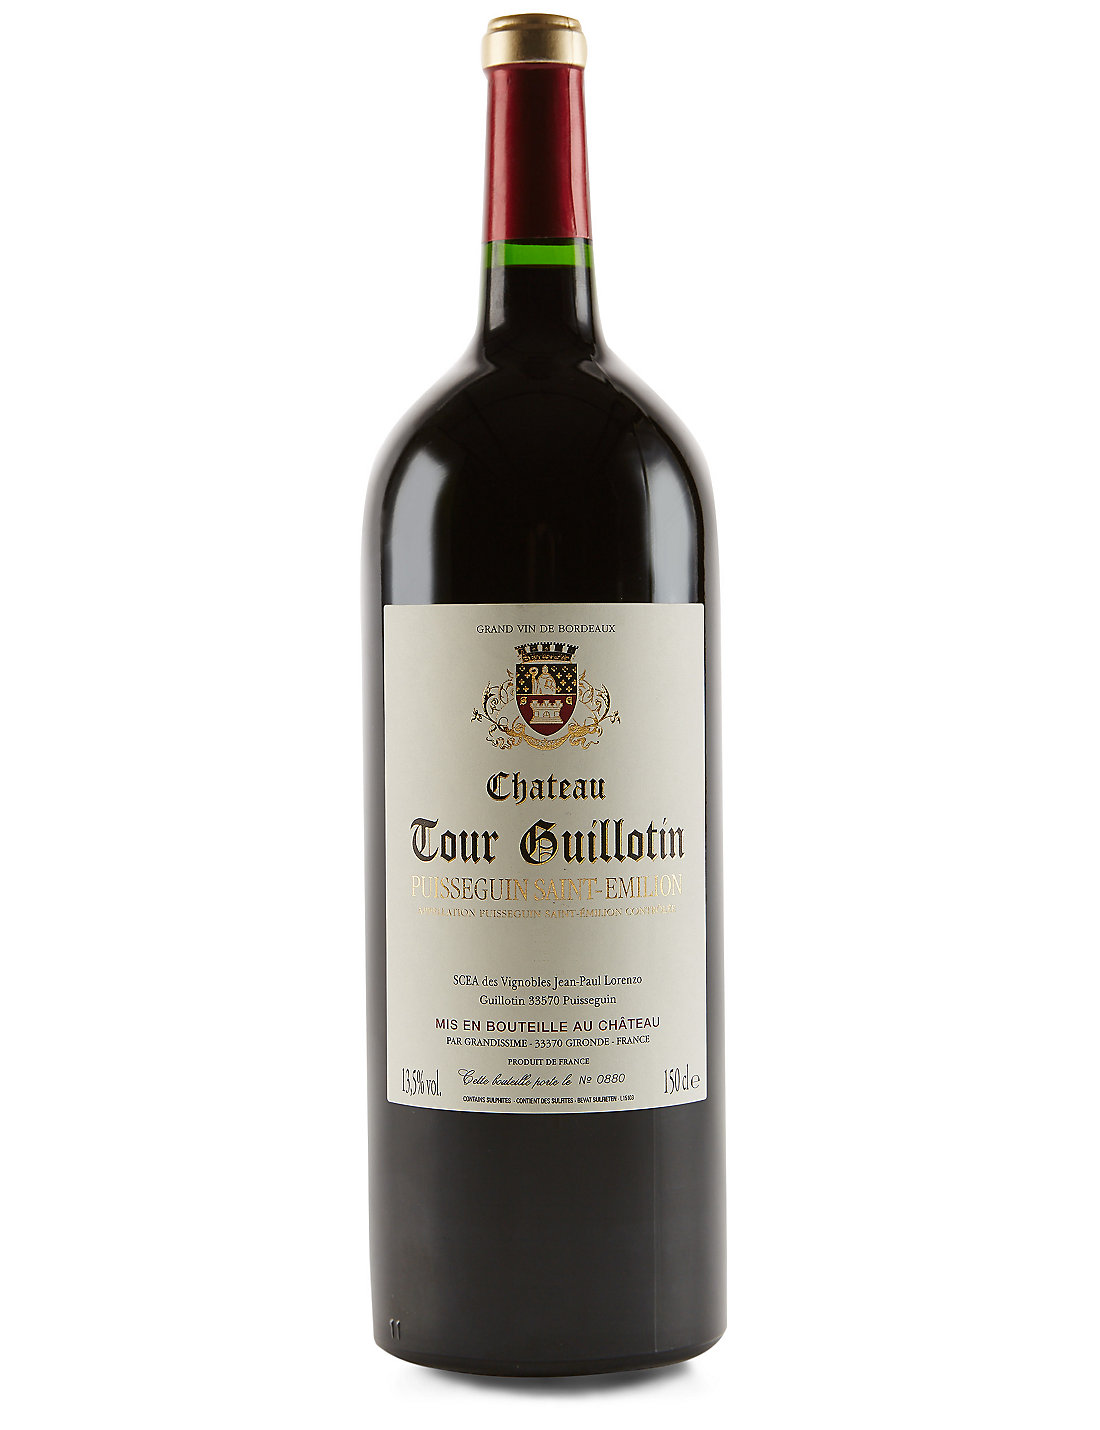 Chateau Tour Guillotin St Emilion Magnum - Single Bottle